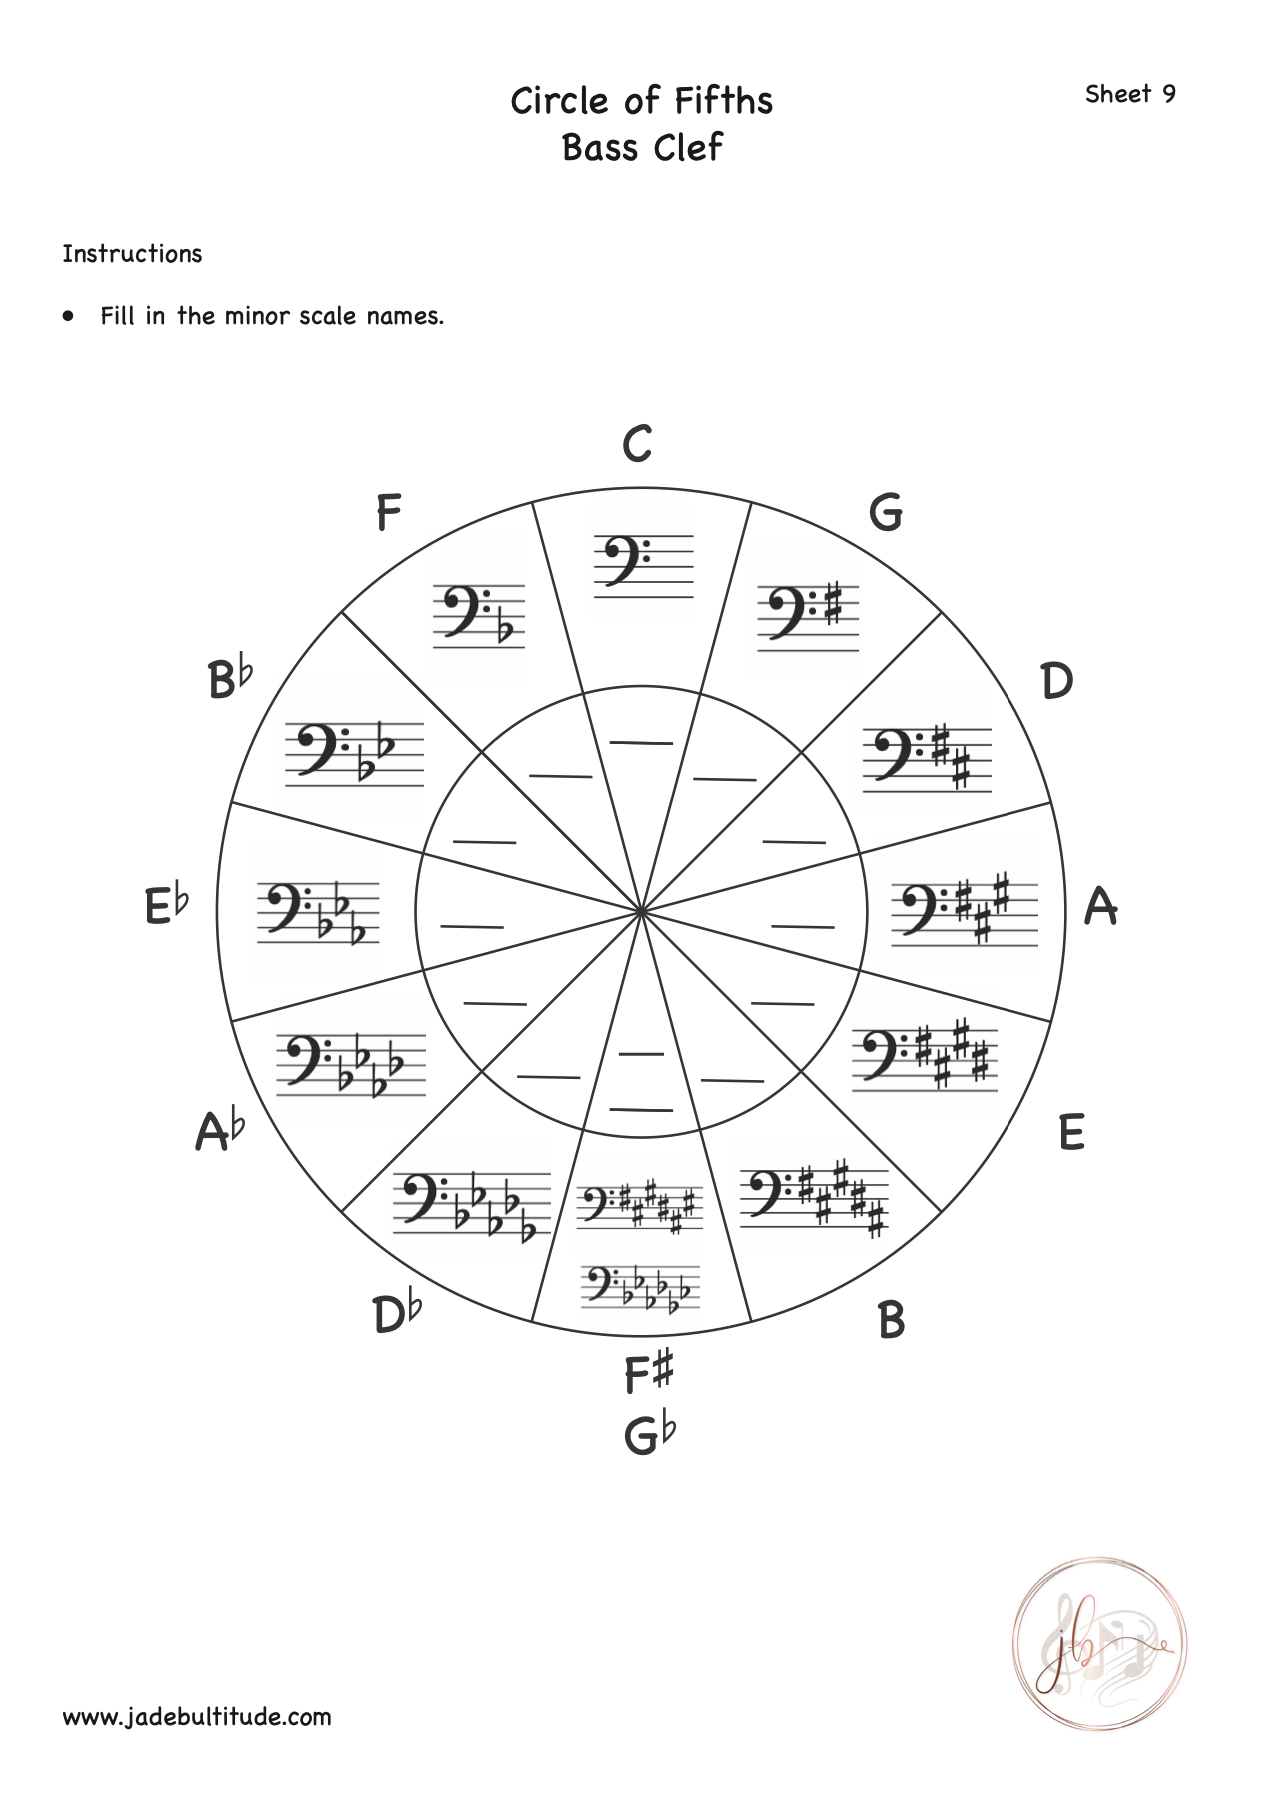 Circle Of Fifths Worksheet Bass Clef